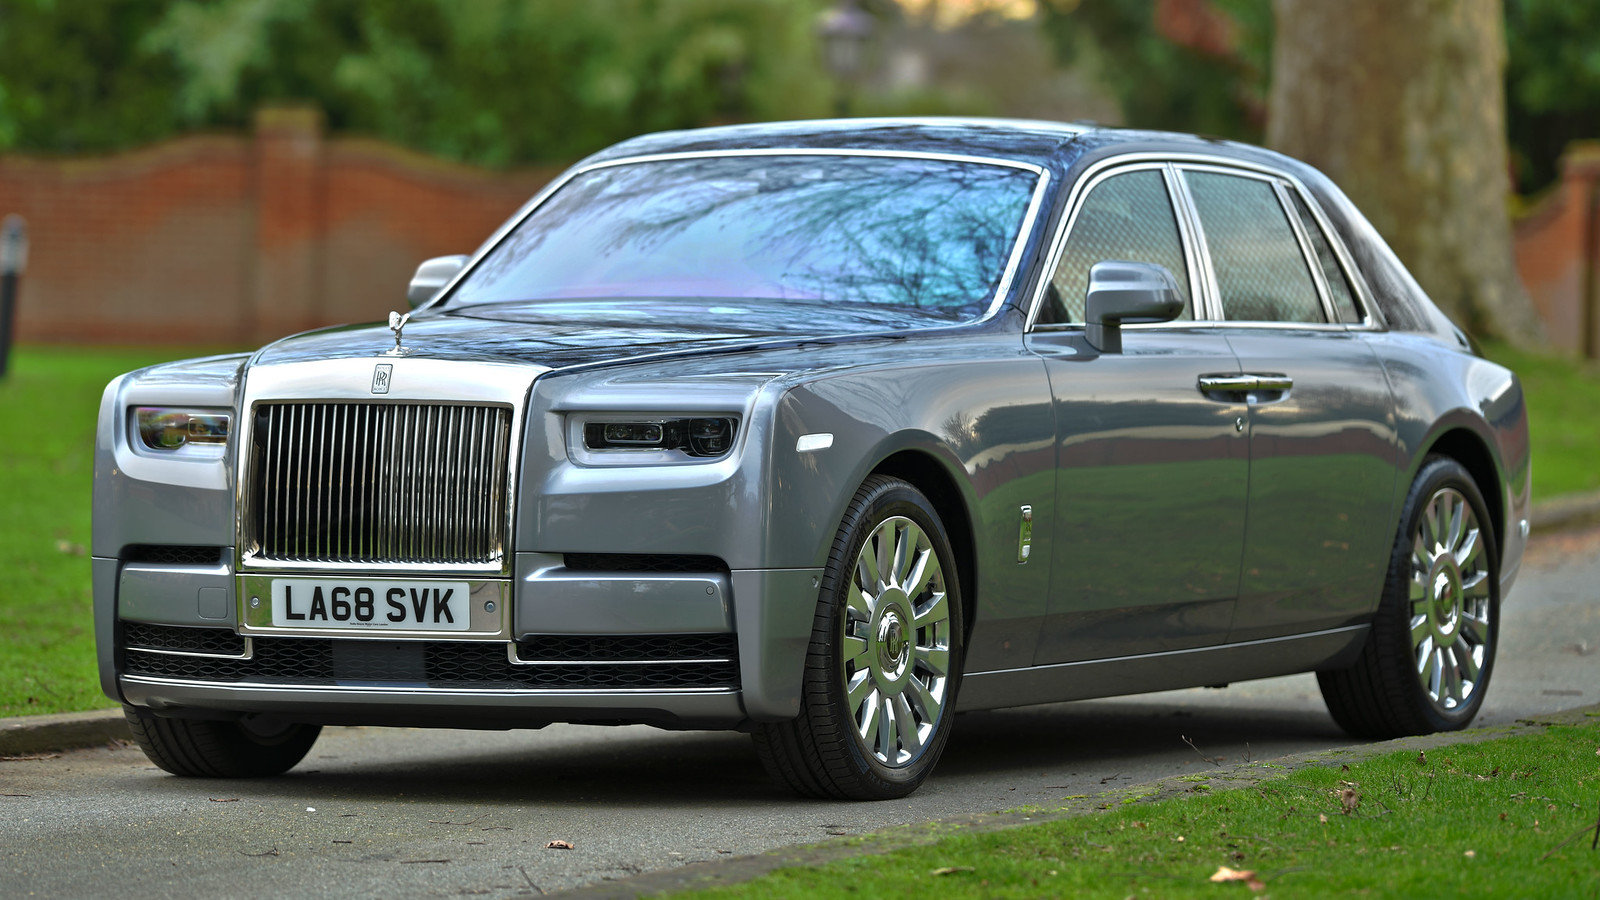 2019 Rolls Royce Phantom 8 For Sale (picture 1 of 6)